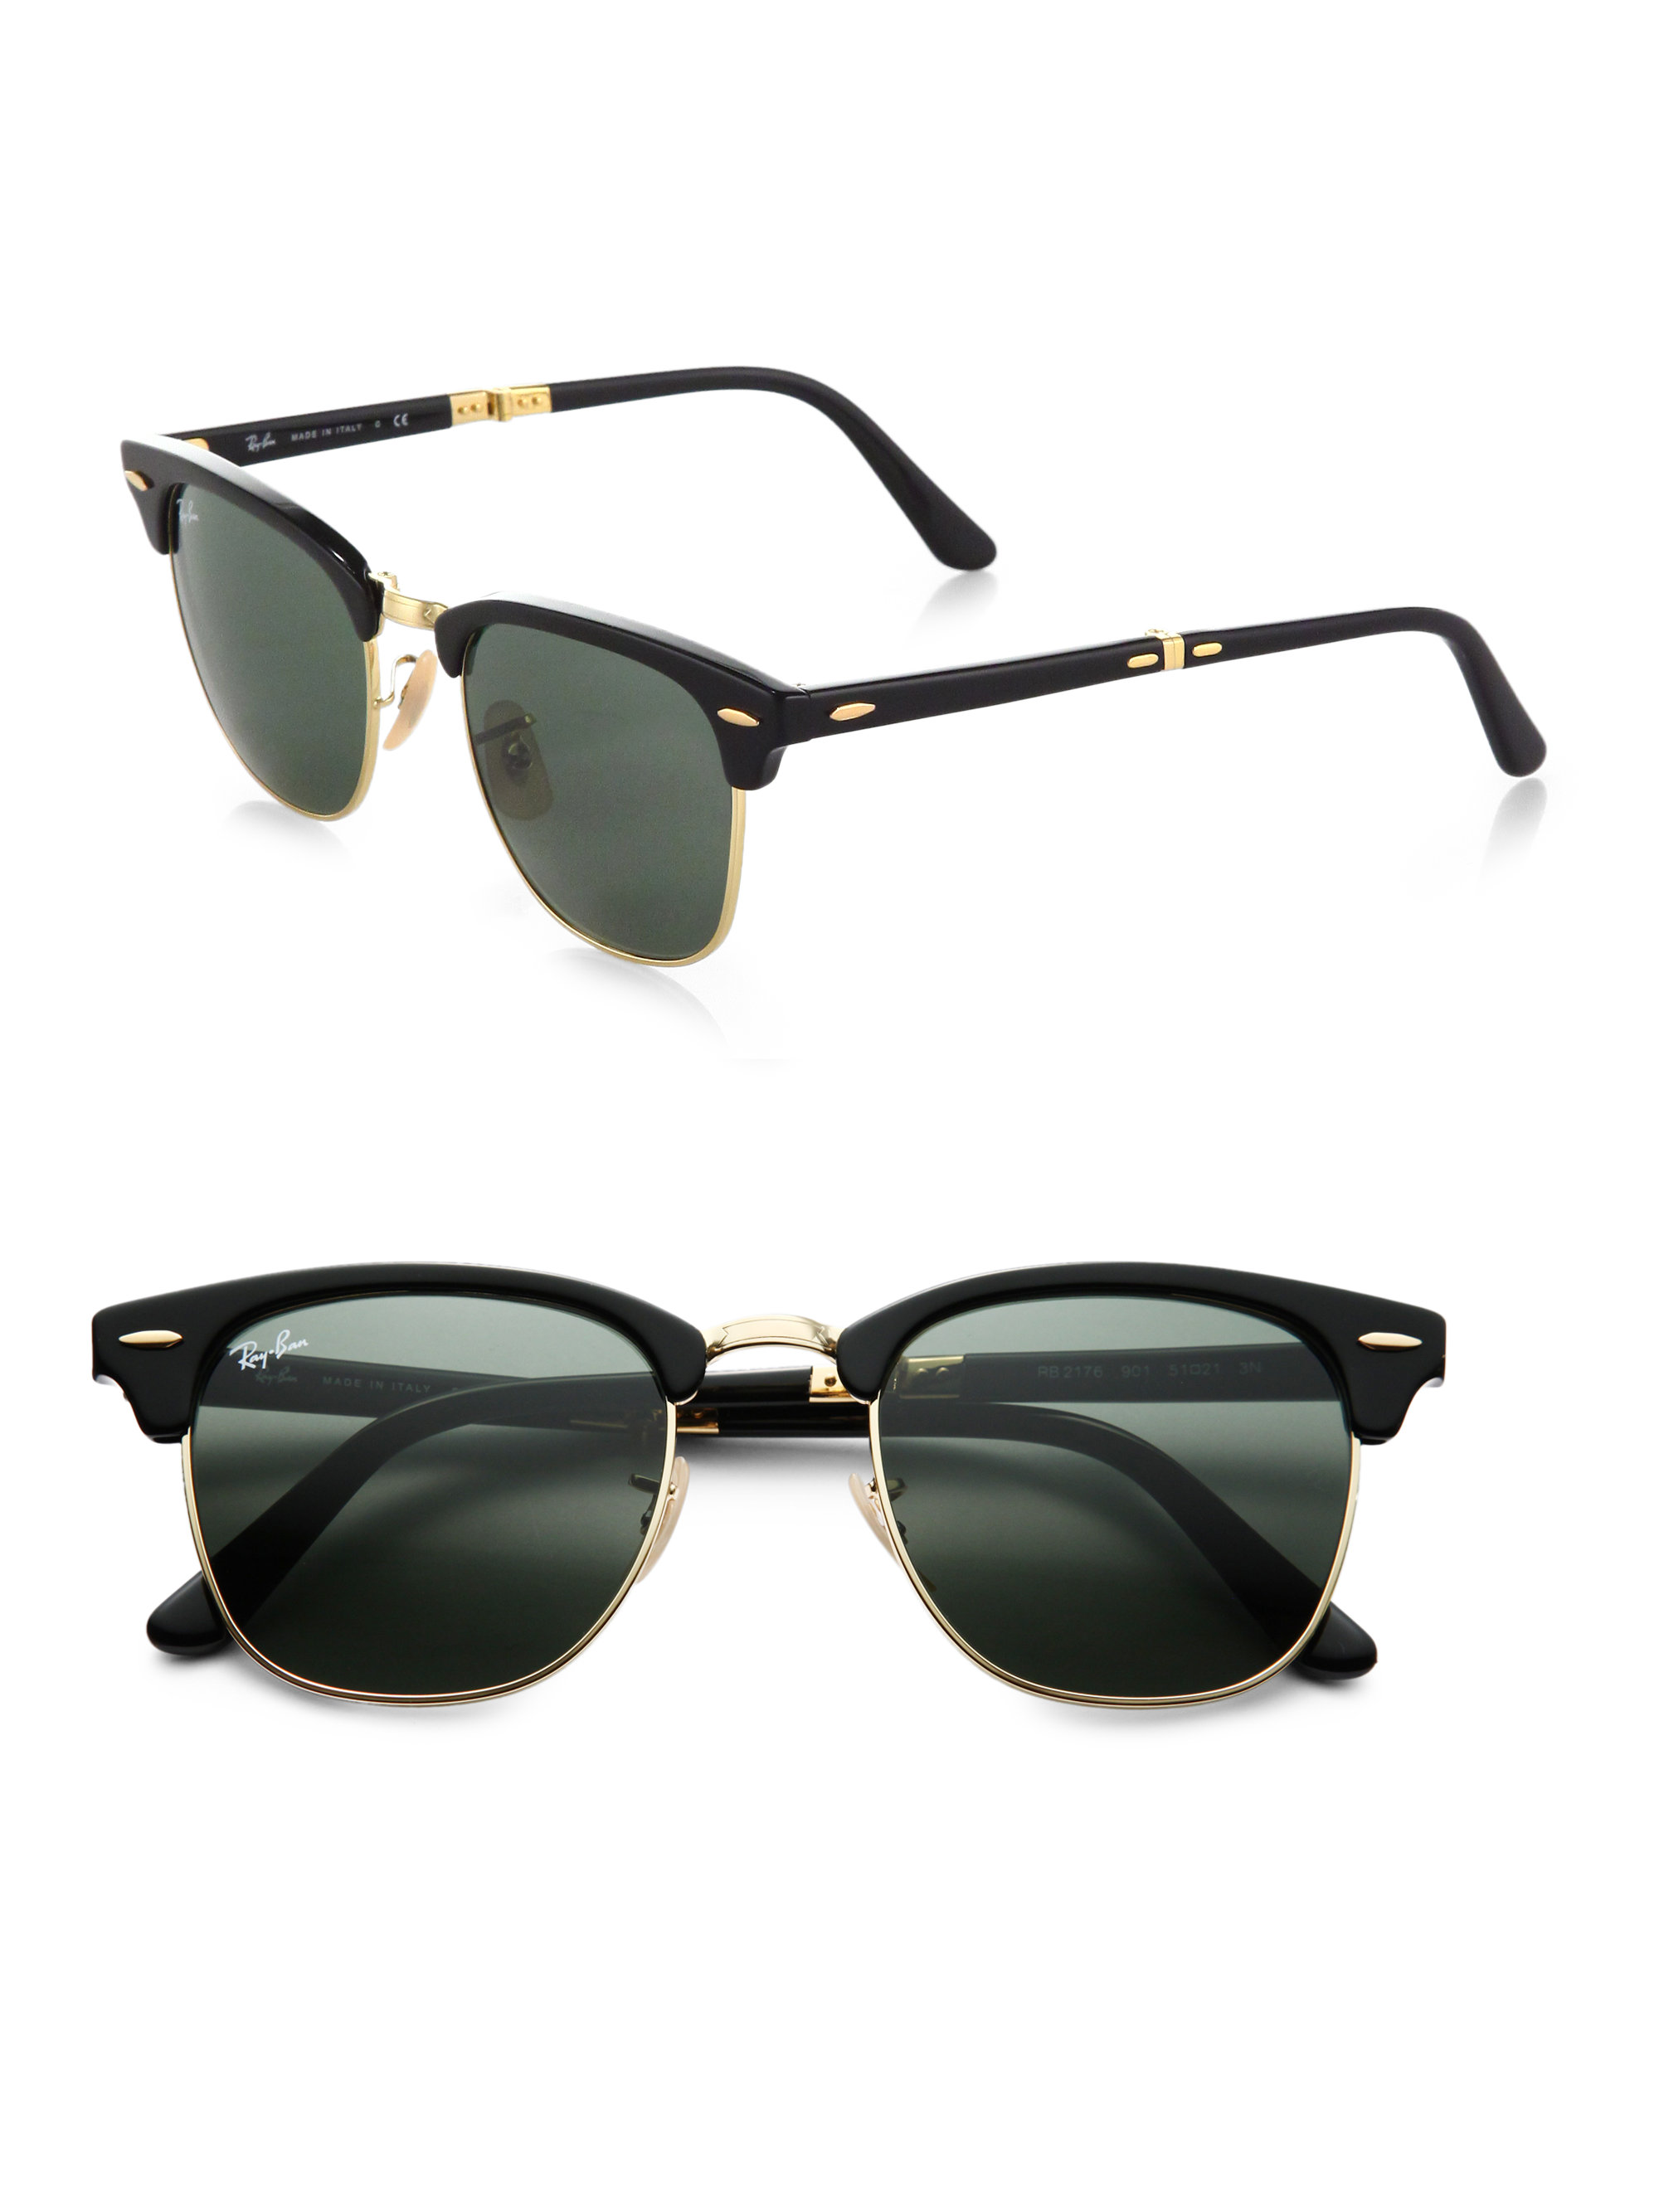 1c045b5d294 Lyst - Ray-Ban Folding Clubmaster Sunglasses in Black